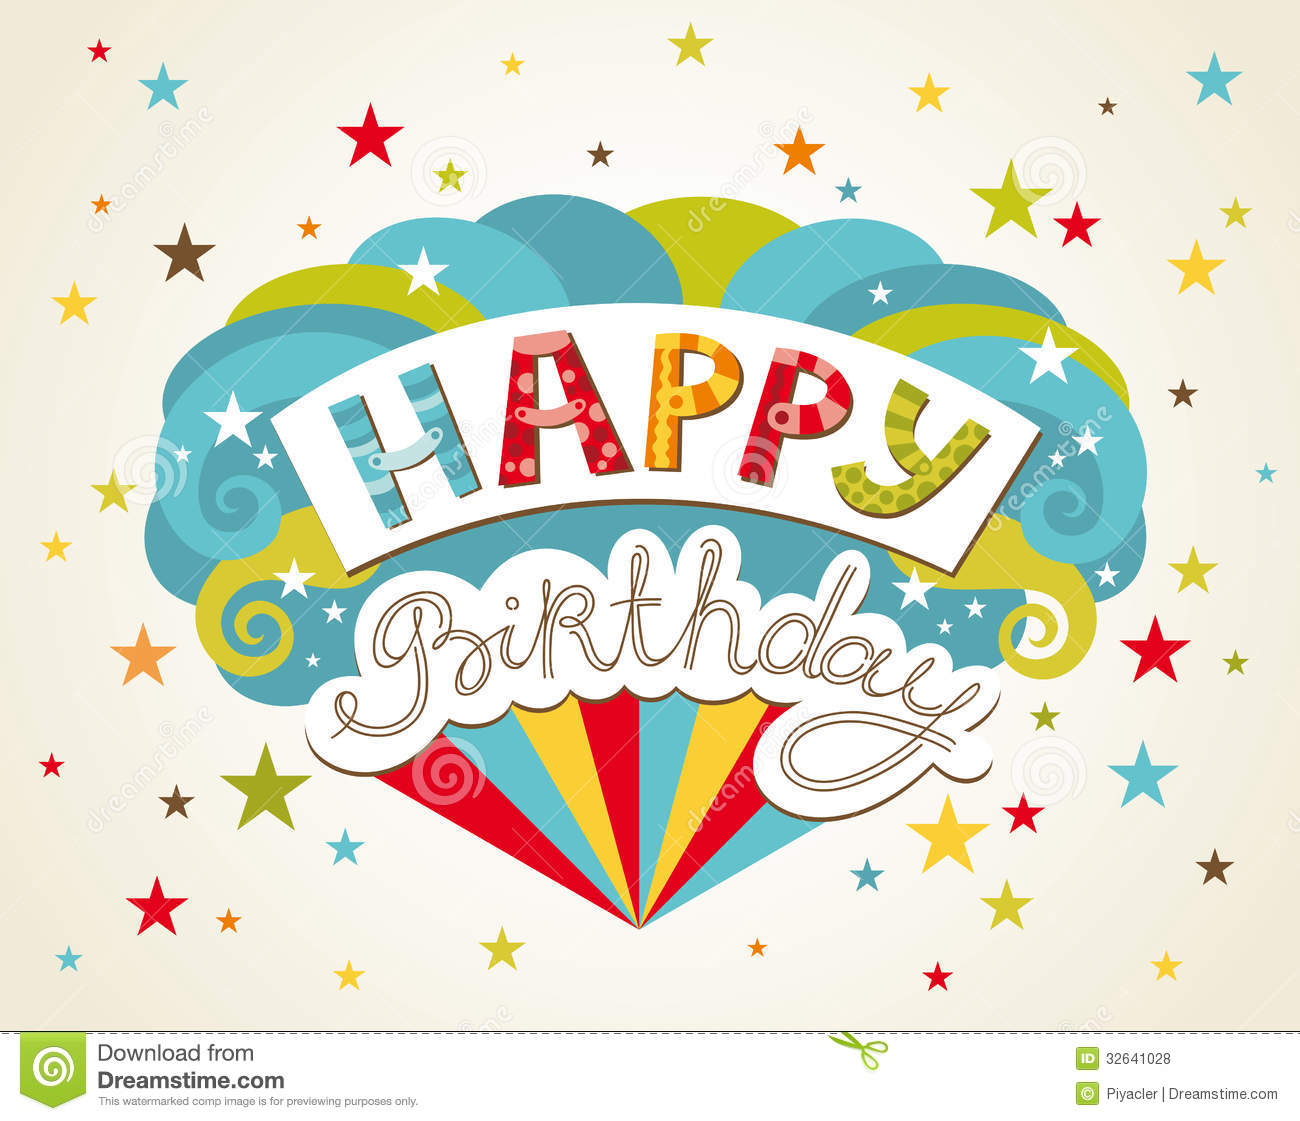 birthday greeting card images free ; happy-birthday-greeting-card-design-vector-illustration-32641028